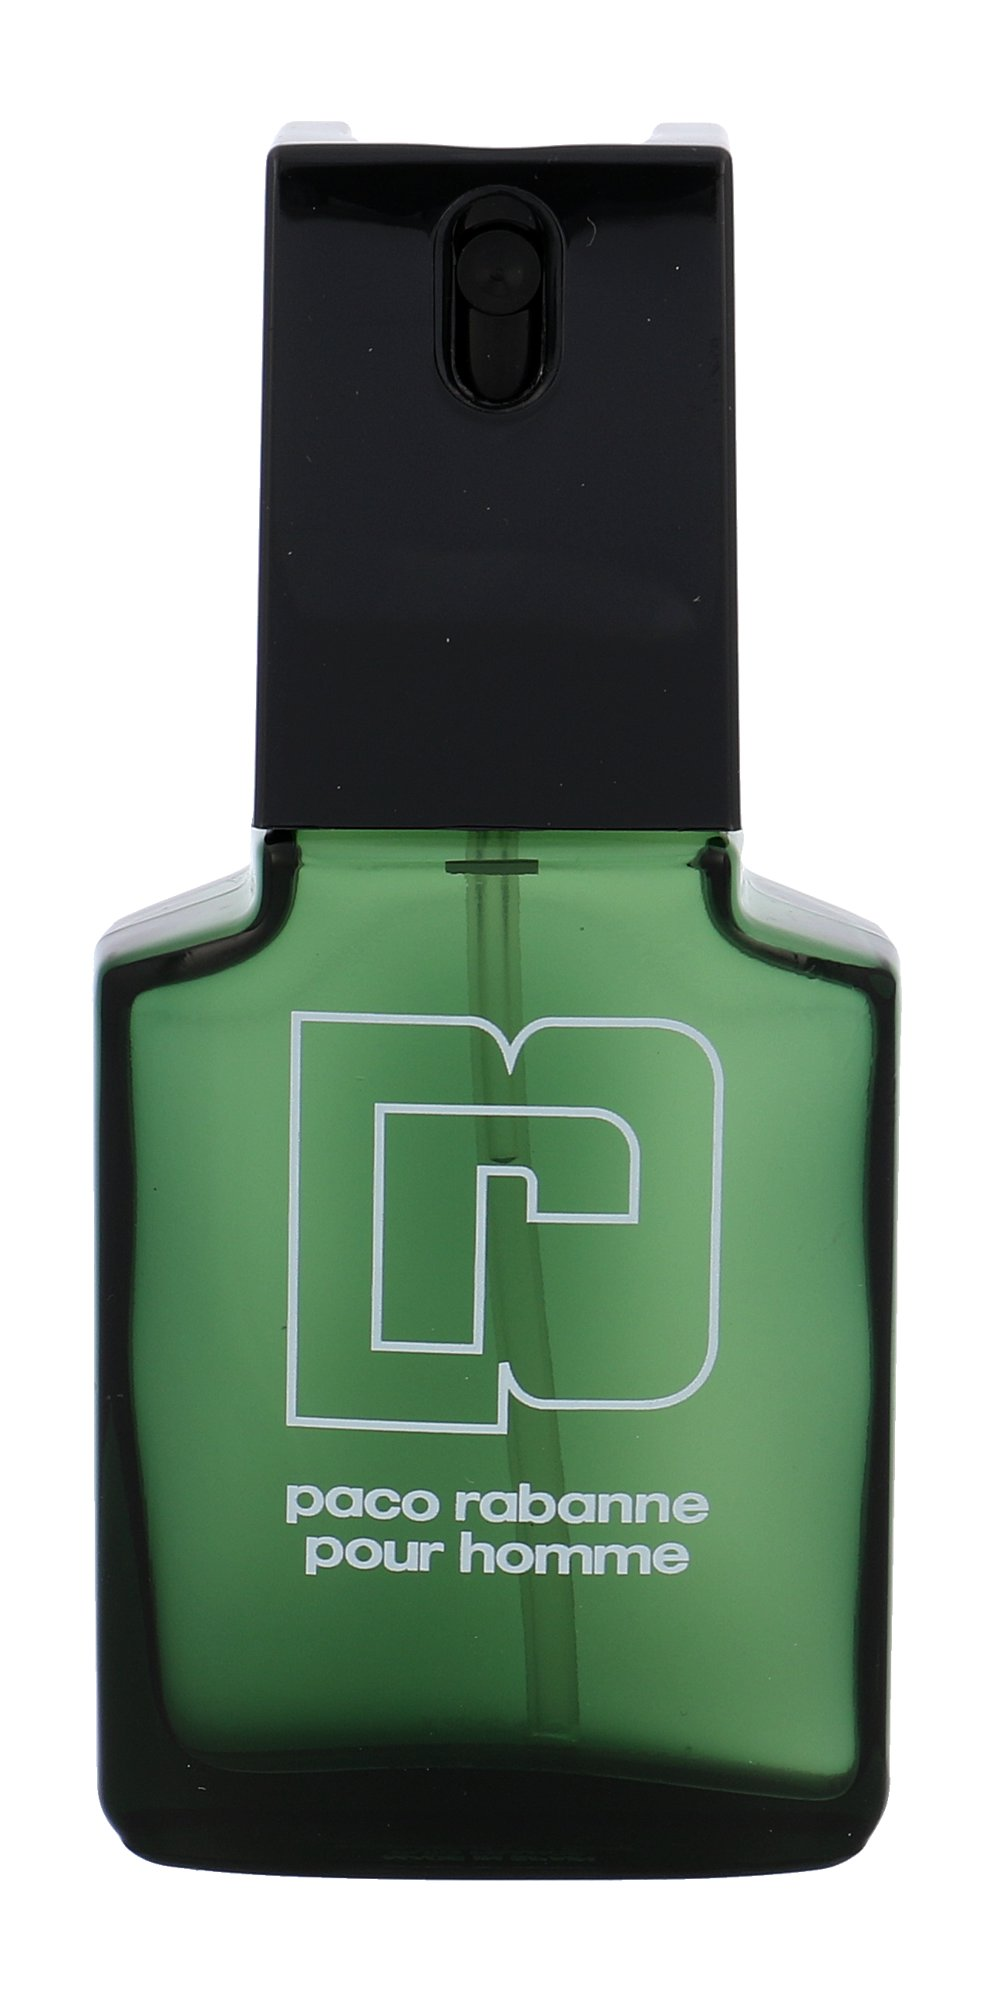 Paco Rabanne Paco Rabanne Pour Homme, edt 30ml